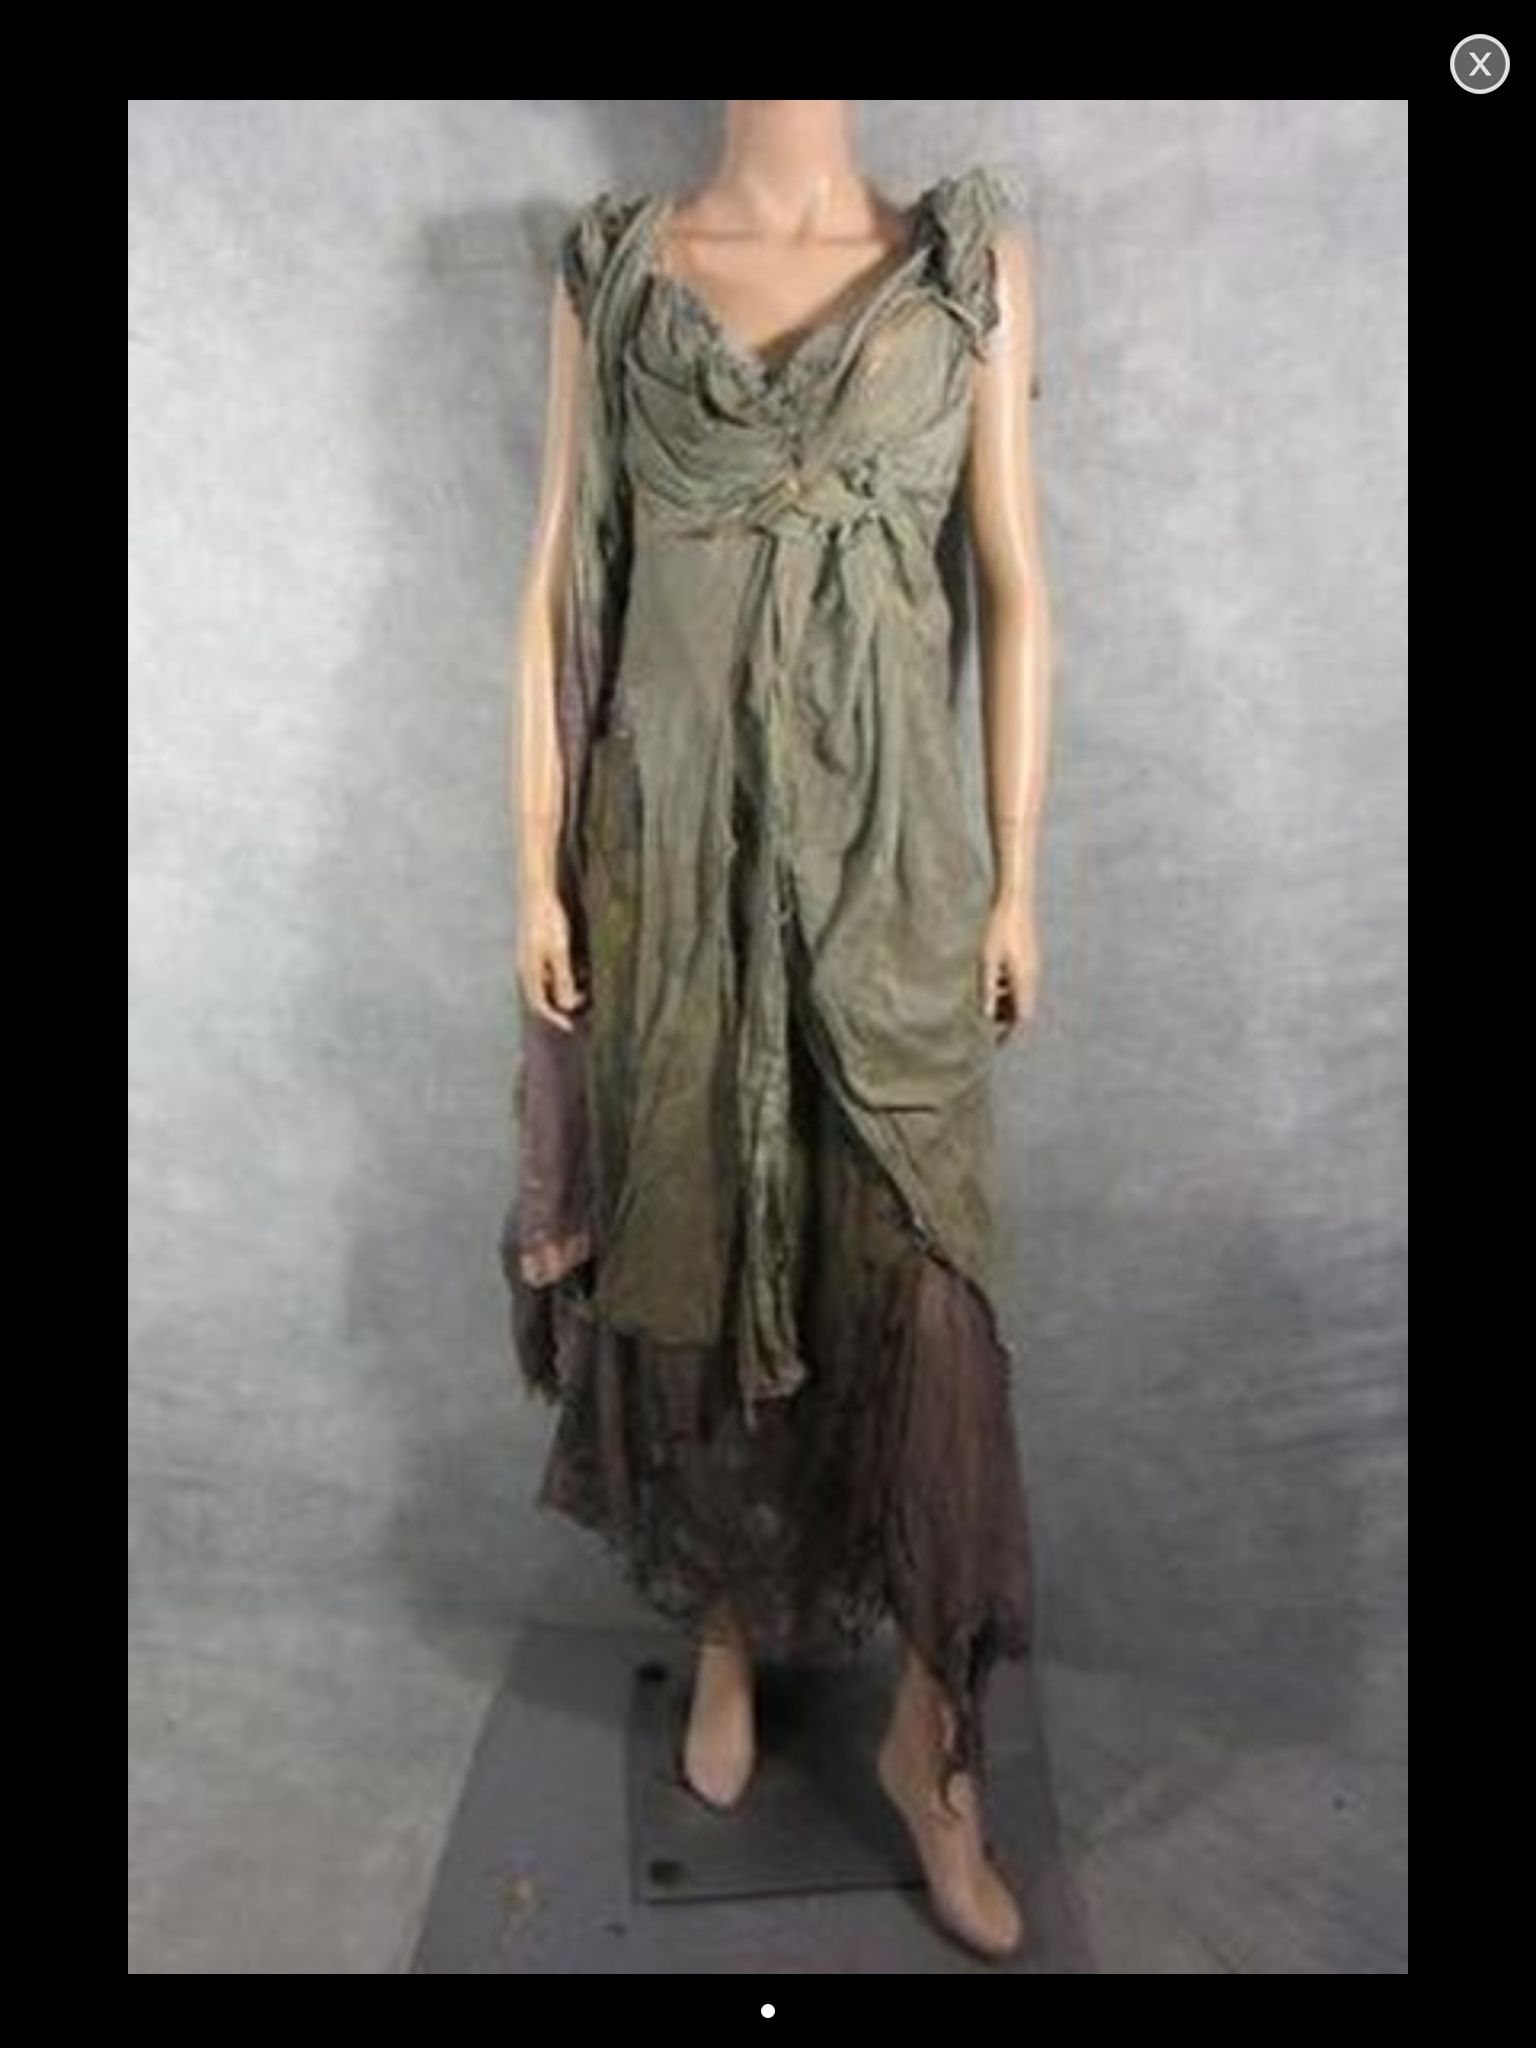 Roman gown from Spartacus | Spartacus Dresses | Pinterest ...